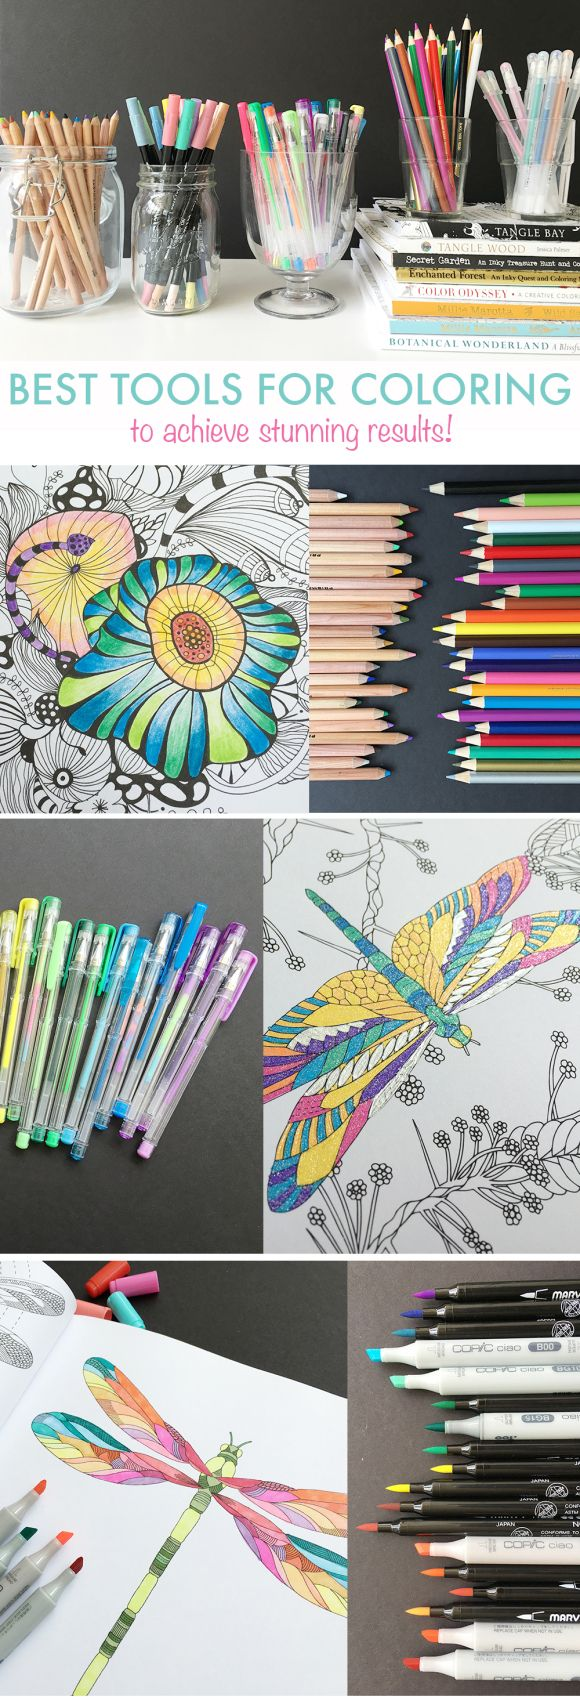 Online coloring tools - Learn The Best Tools Tips And Tricks For Coloring Looking For A Fun Coloring